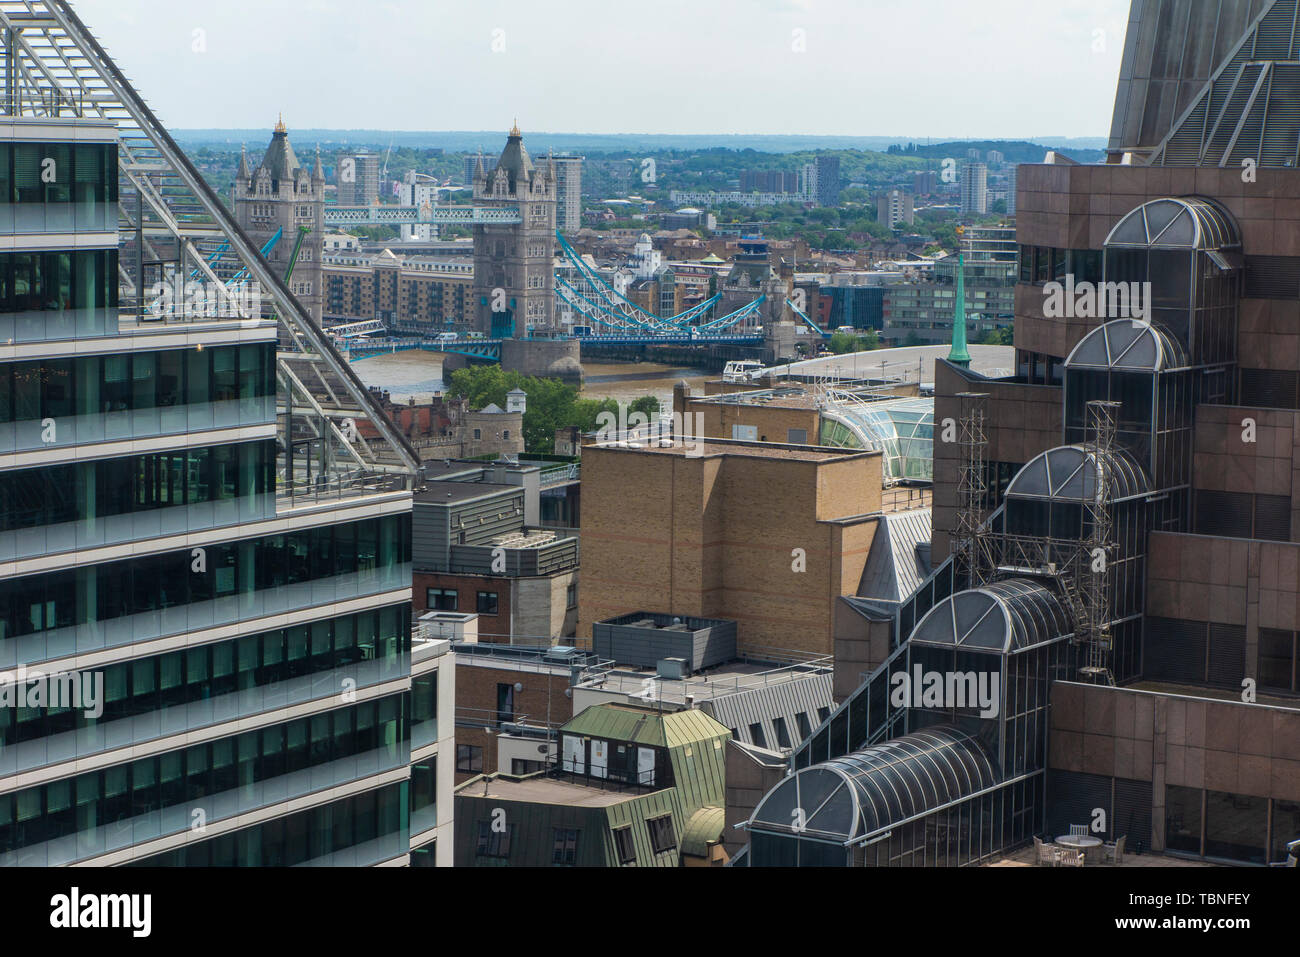 A view of the City of London offices with Tower Bridge in the distance - Stock Image